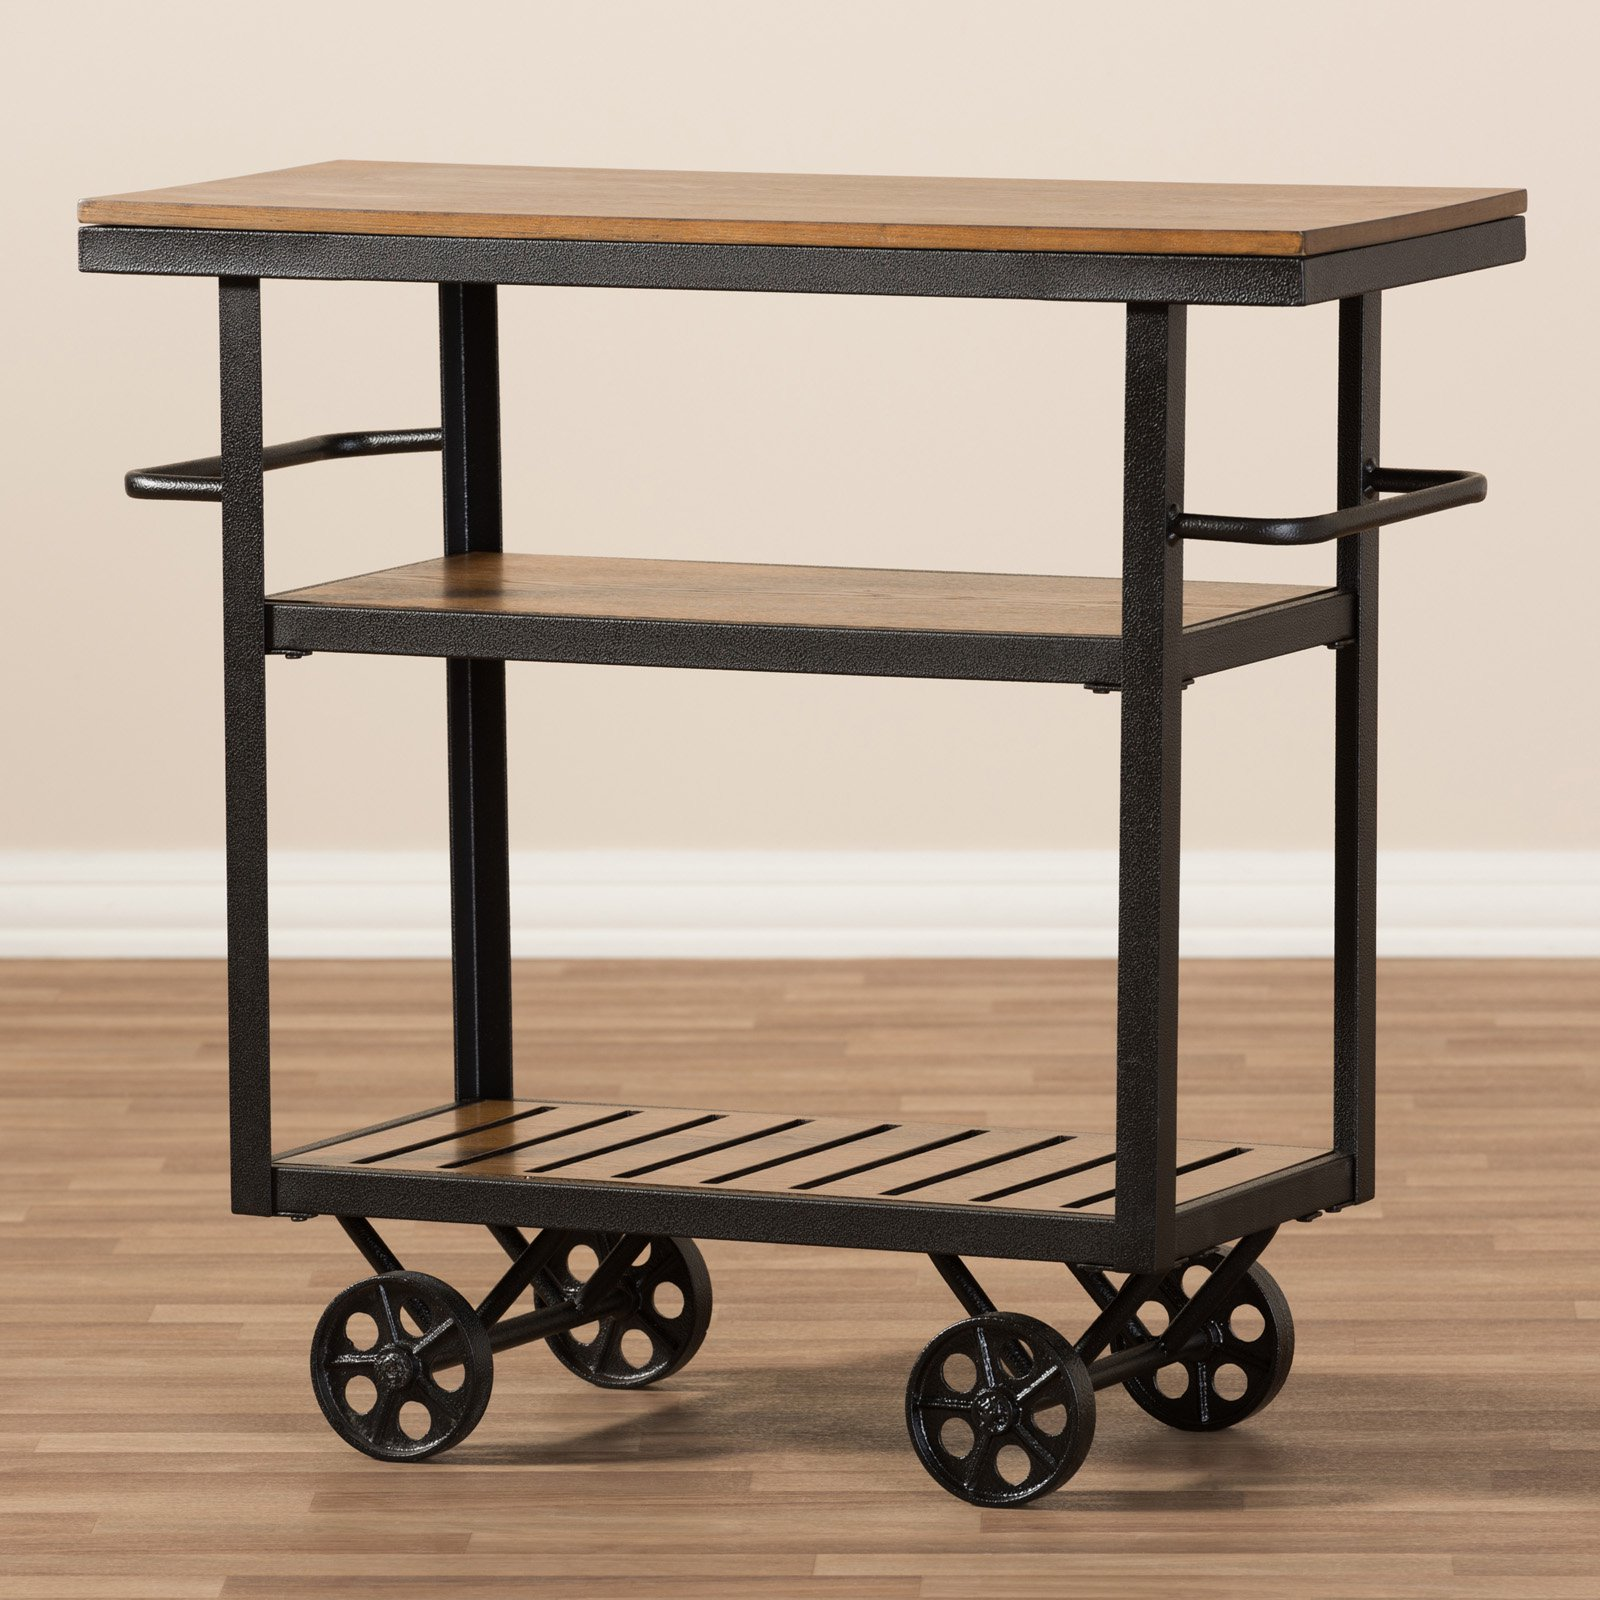 Baxton Studio Kennedy Rustic Antique Black Textured Industrial Metal and Distressed Wood Mobile Serving Cart by Wholesale Interiors